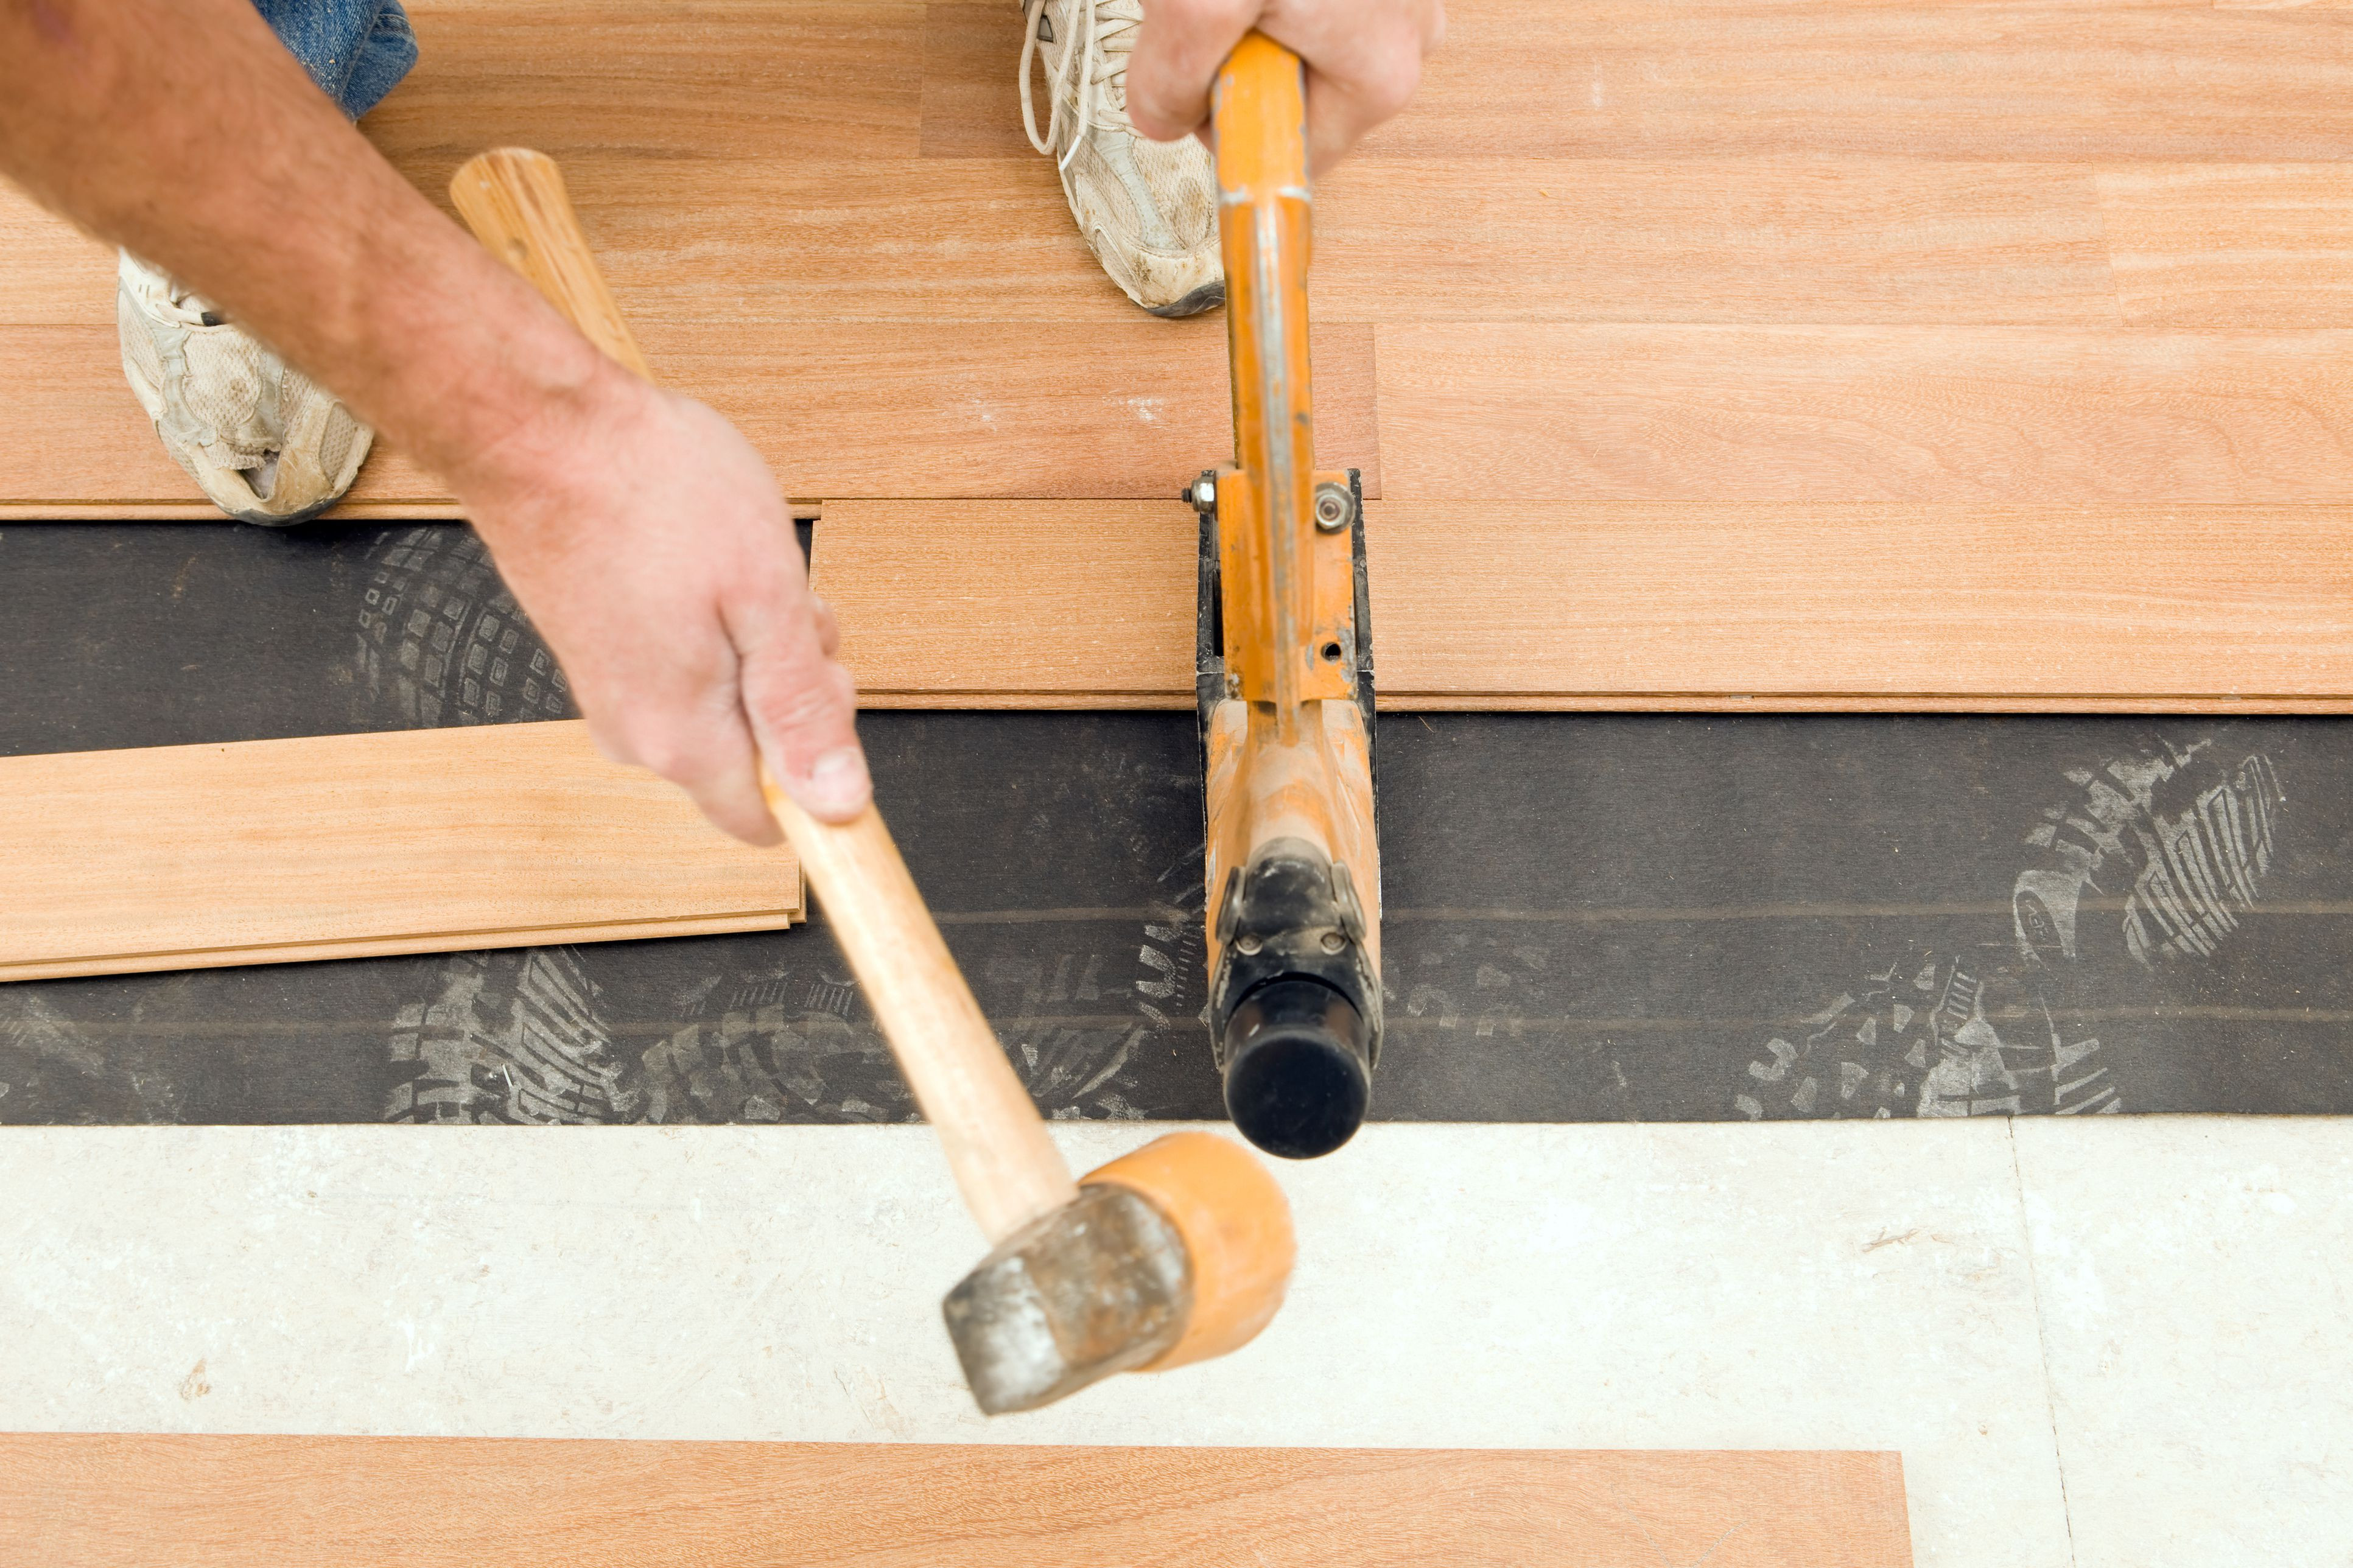 two different types of hardwood floors of the hardest wood flooring you can buy throughout worker installing new cumuru hardwood floor 186852280 5827f3bc5f9b58d5b11372fc